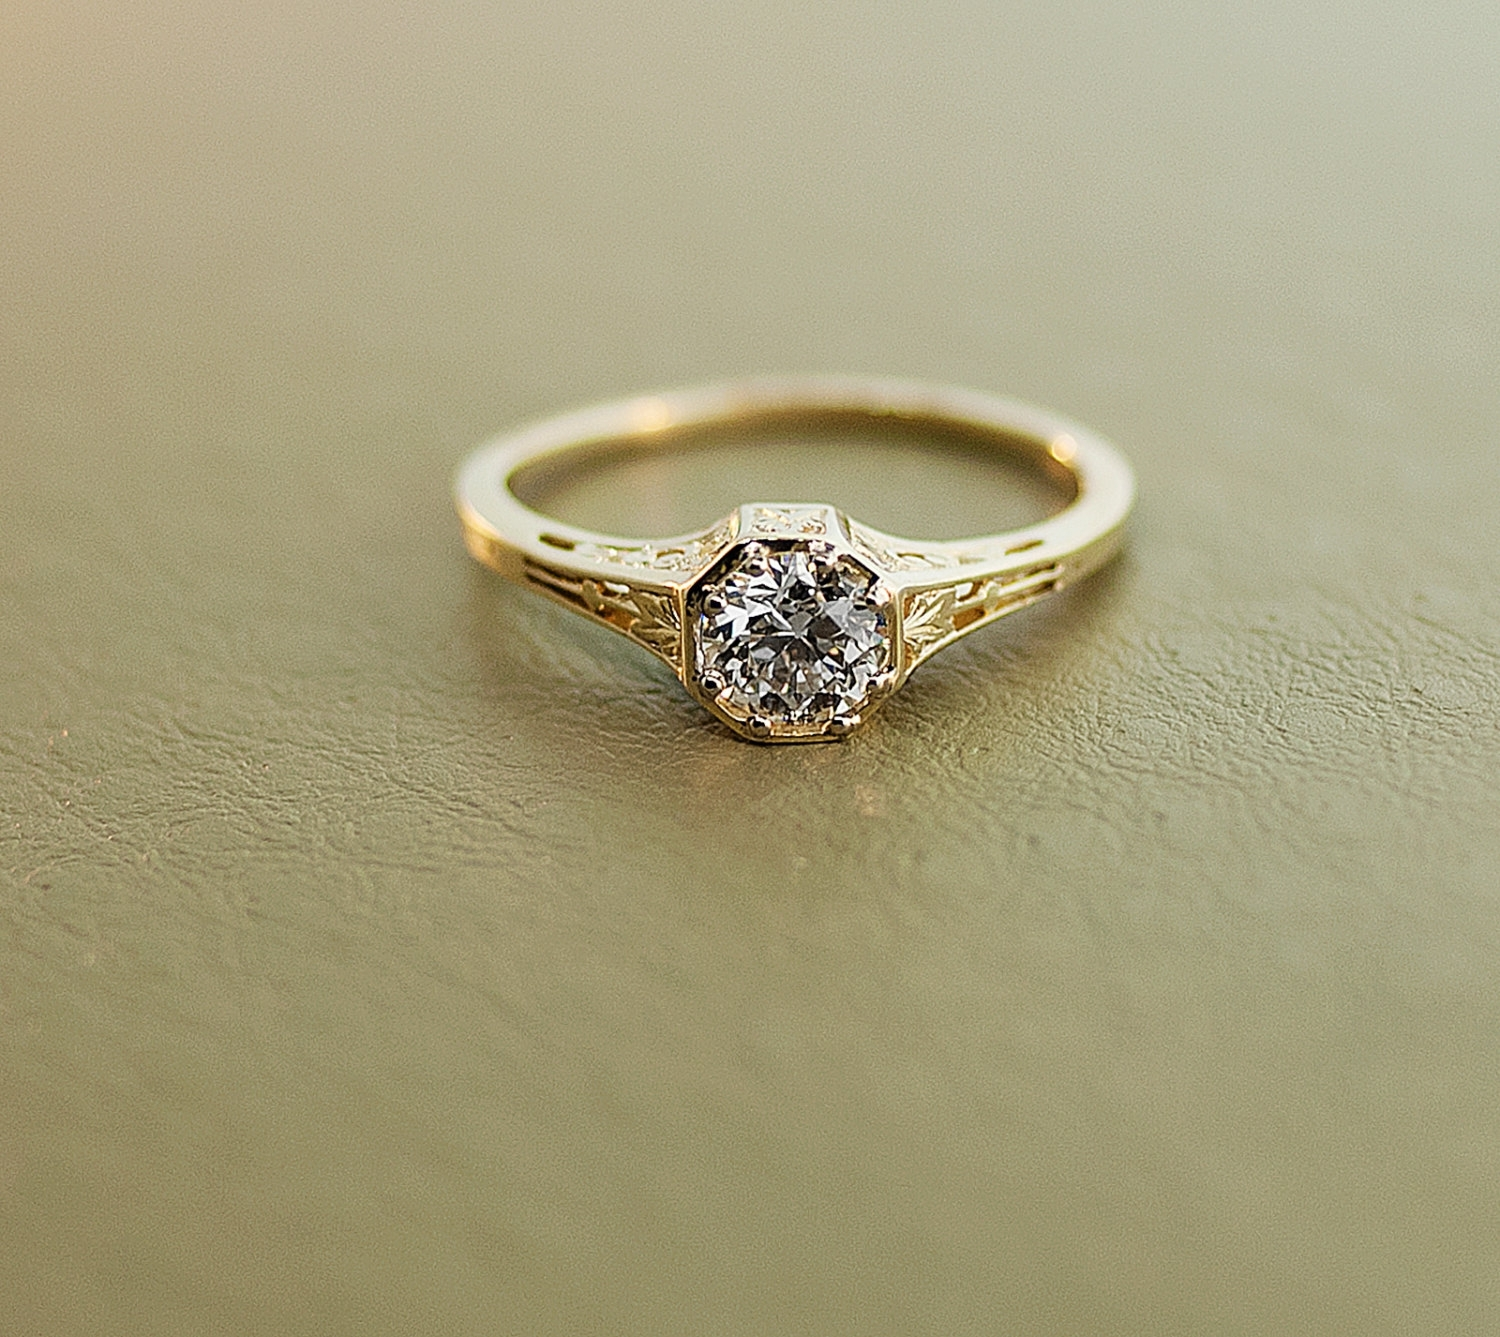 Gold Engagement Rings Vintage | Wedding, Promise, Diamond Inside Most Up To Date Vintage Style Gold Engagement Rings (View 5 of 15)